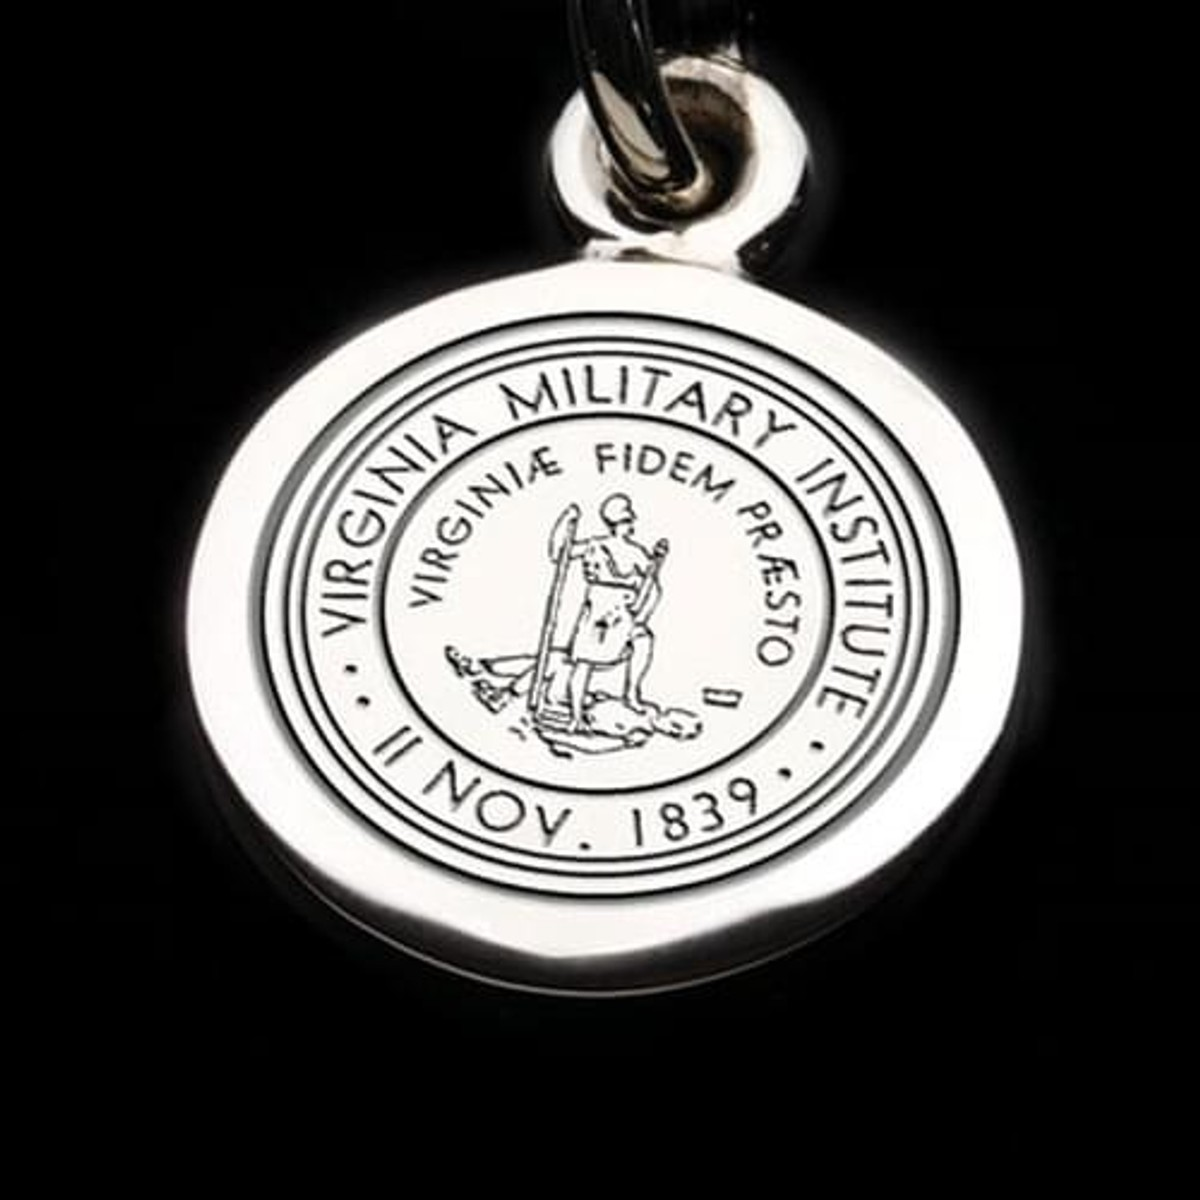 virginia military institute sterling silver individual charm In US Nickels Silver Content